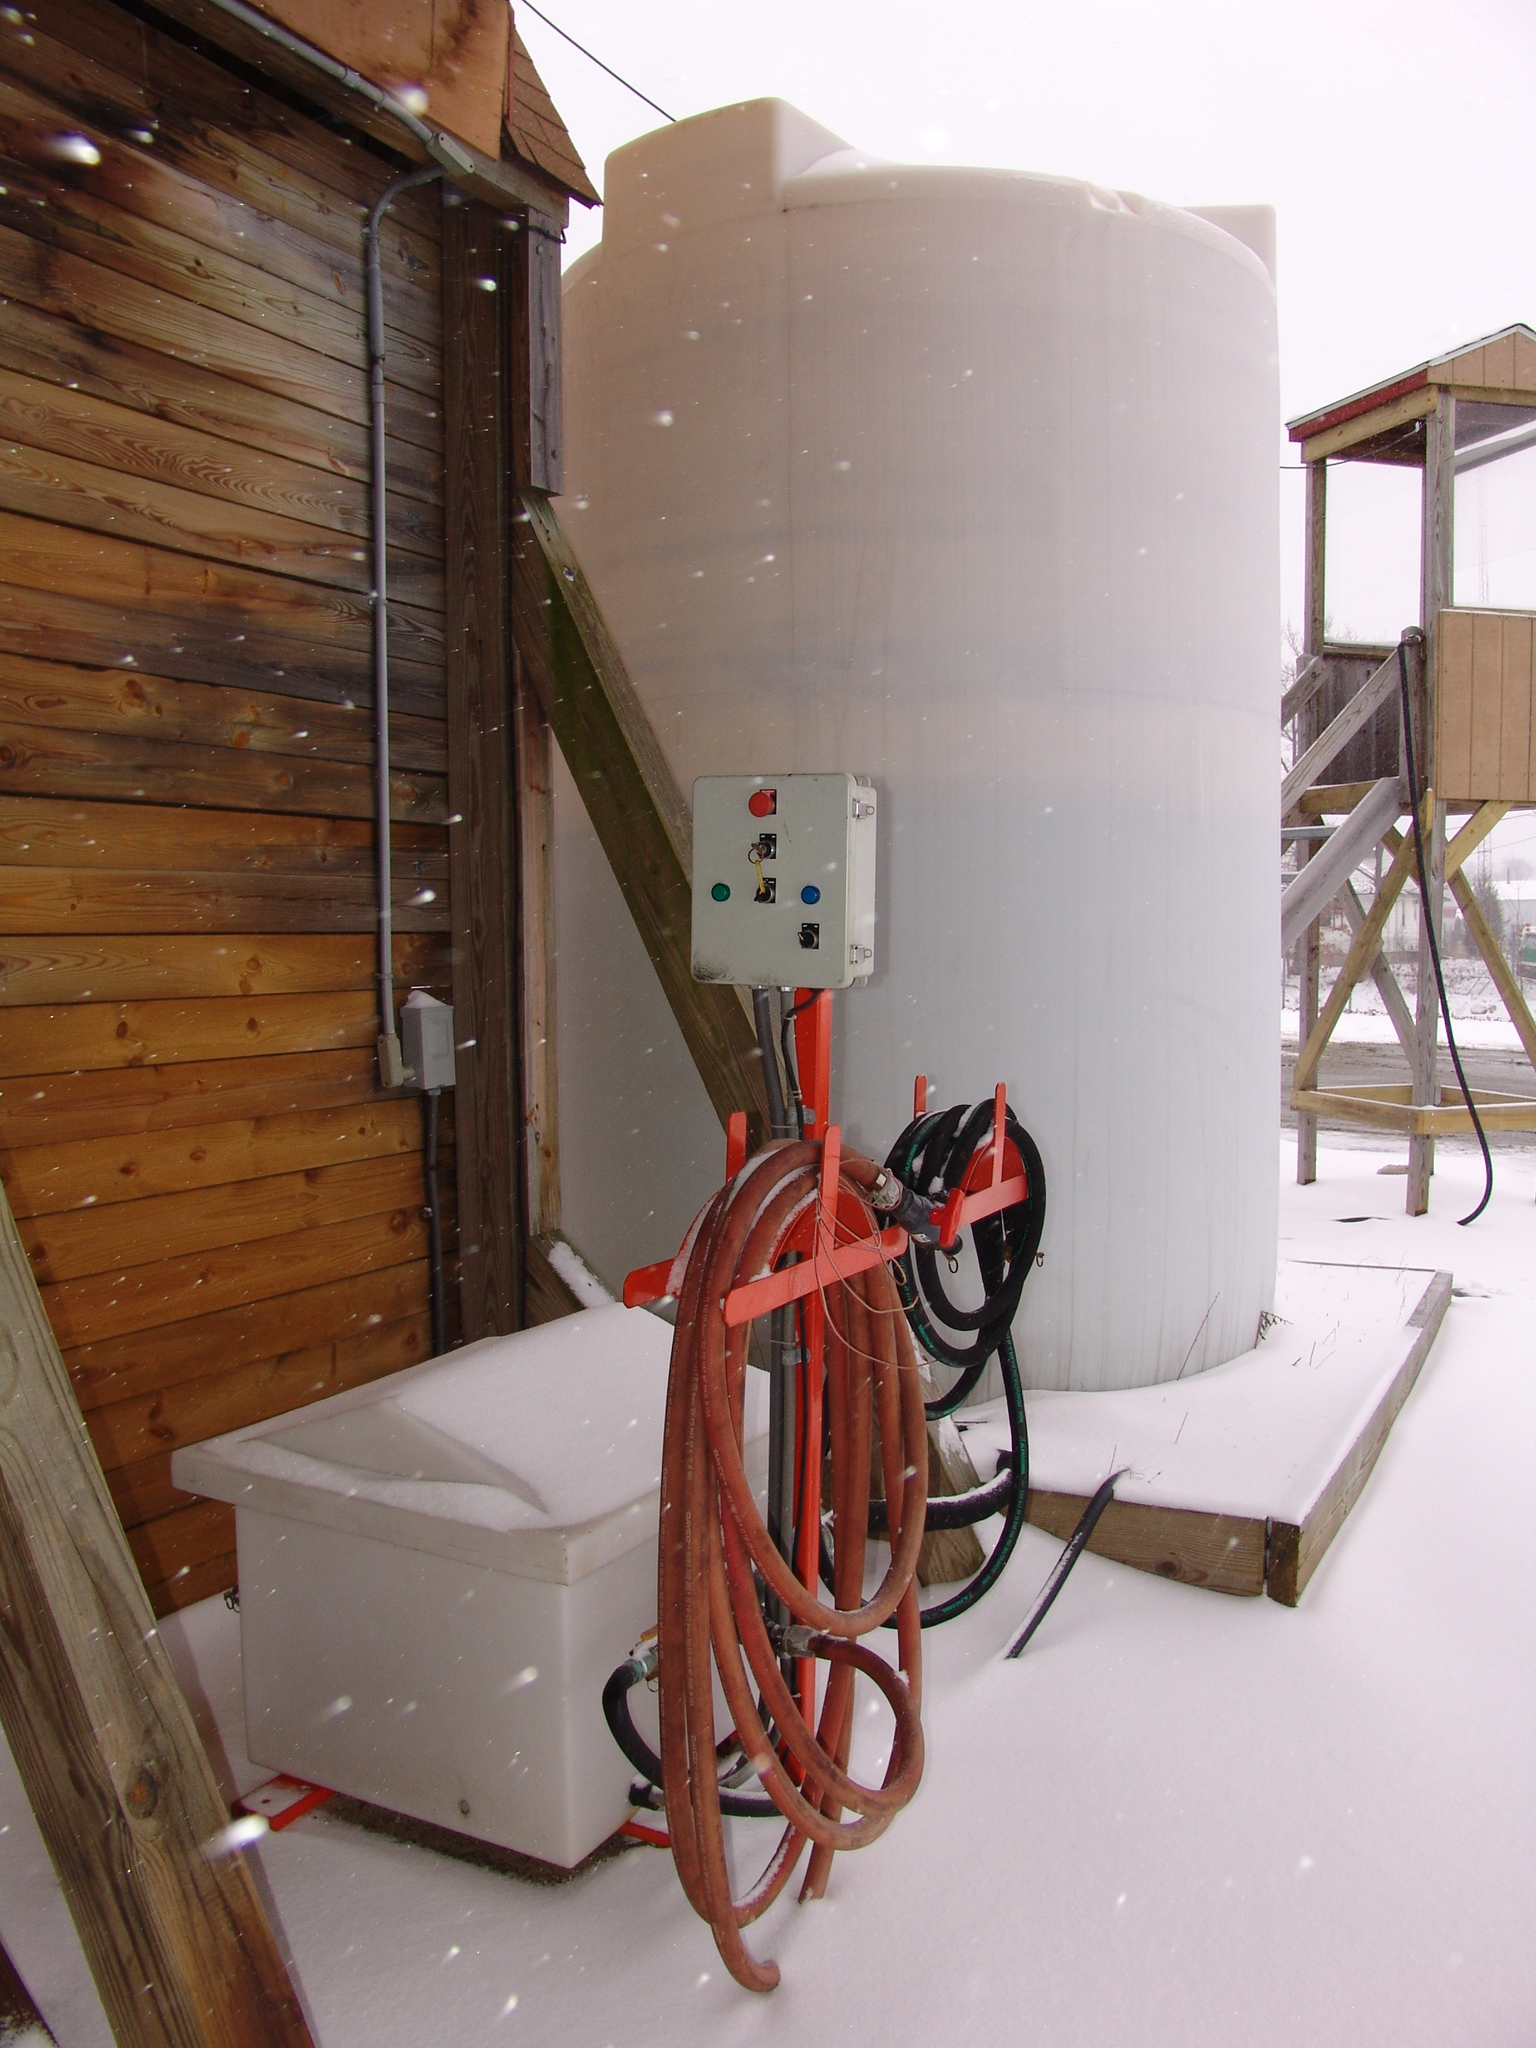 liquid mag storage tank and dispensing system for anti-icing and pre-wetting salt.